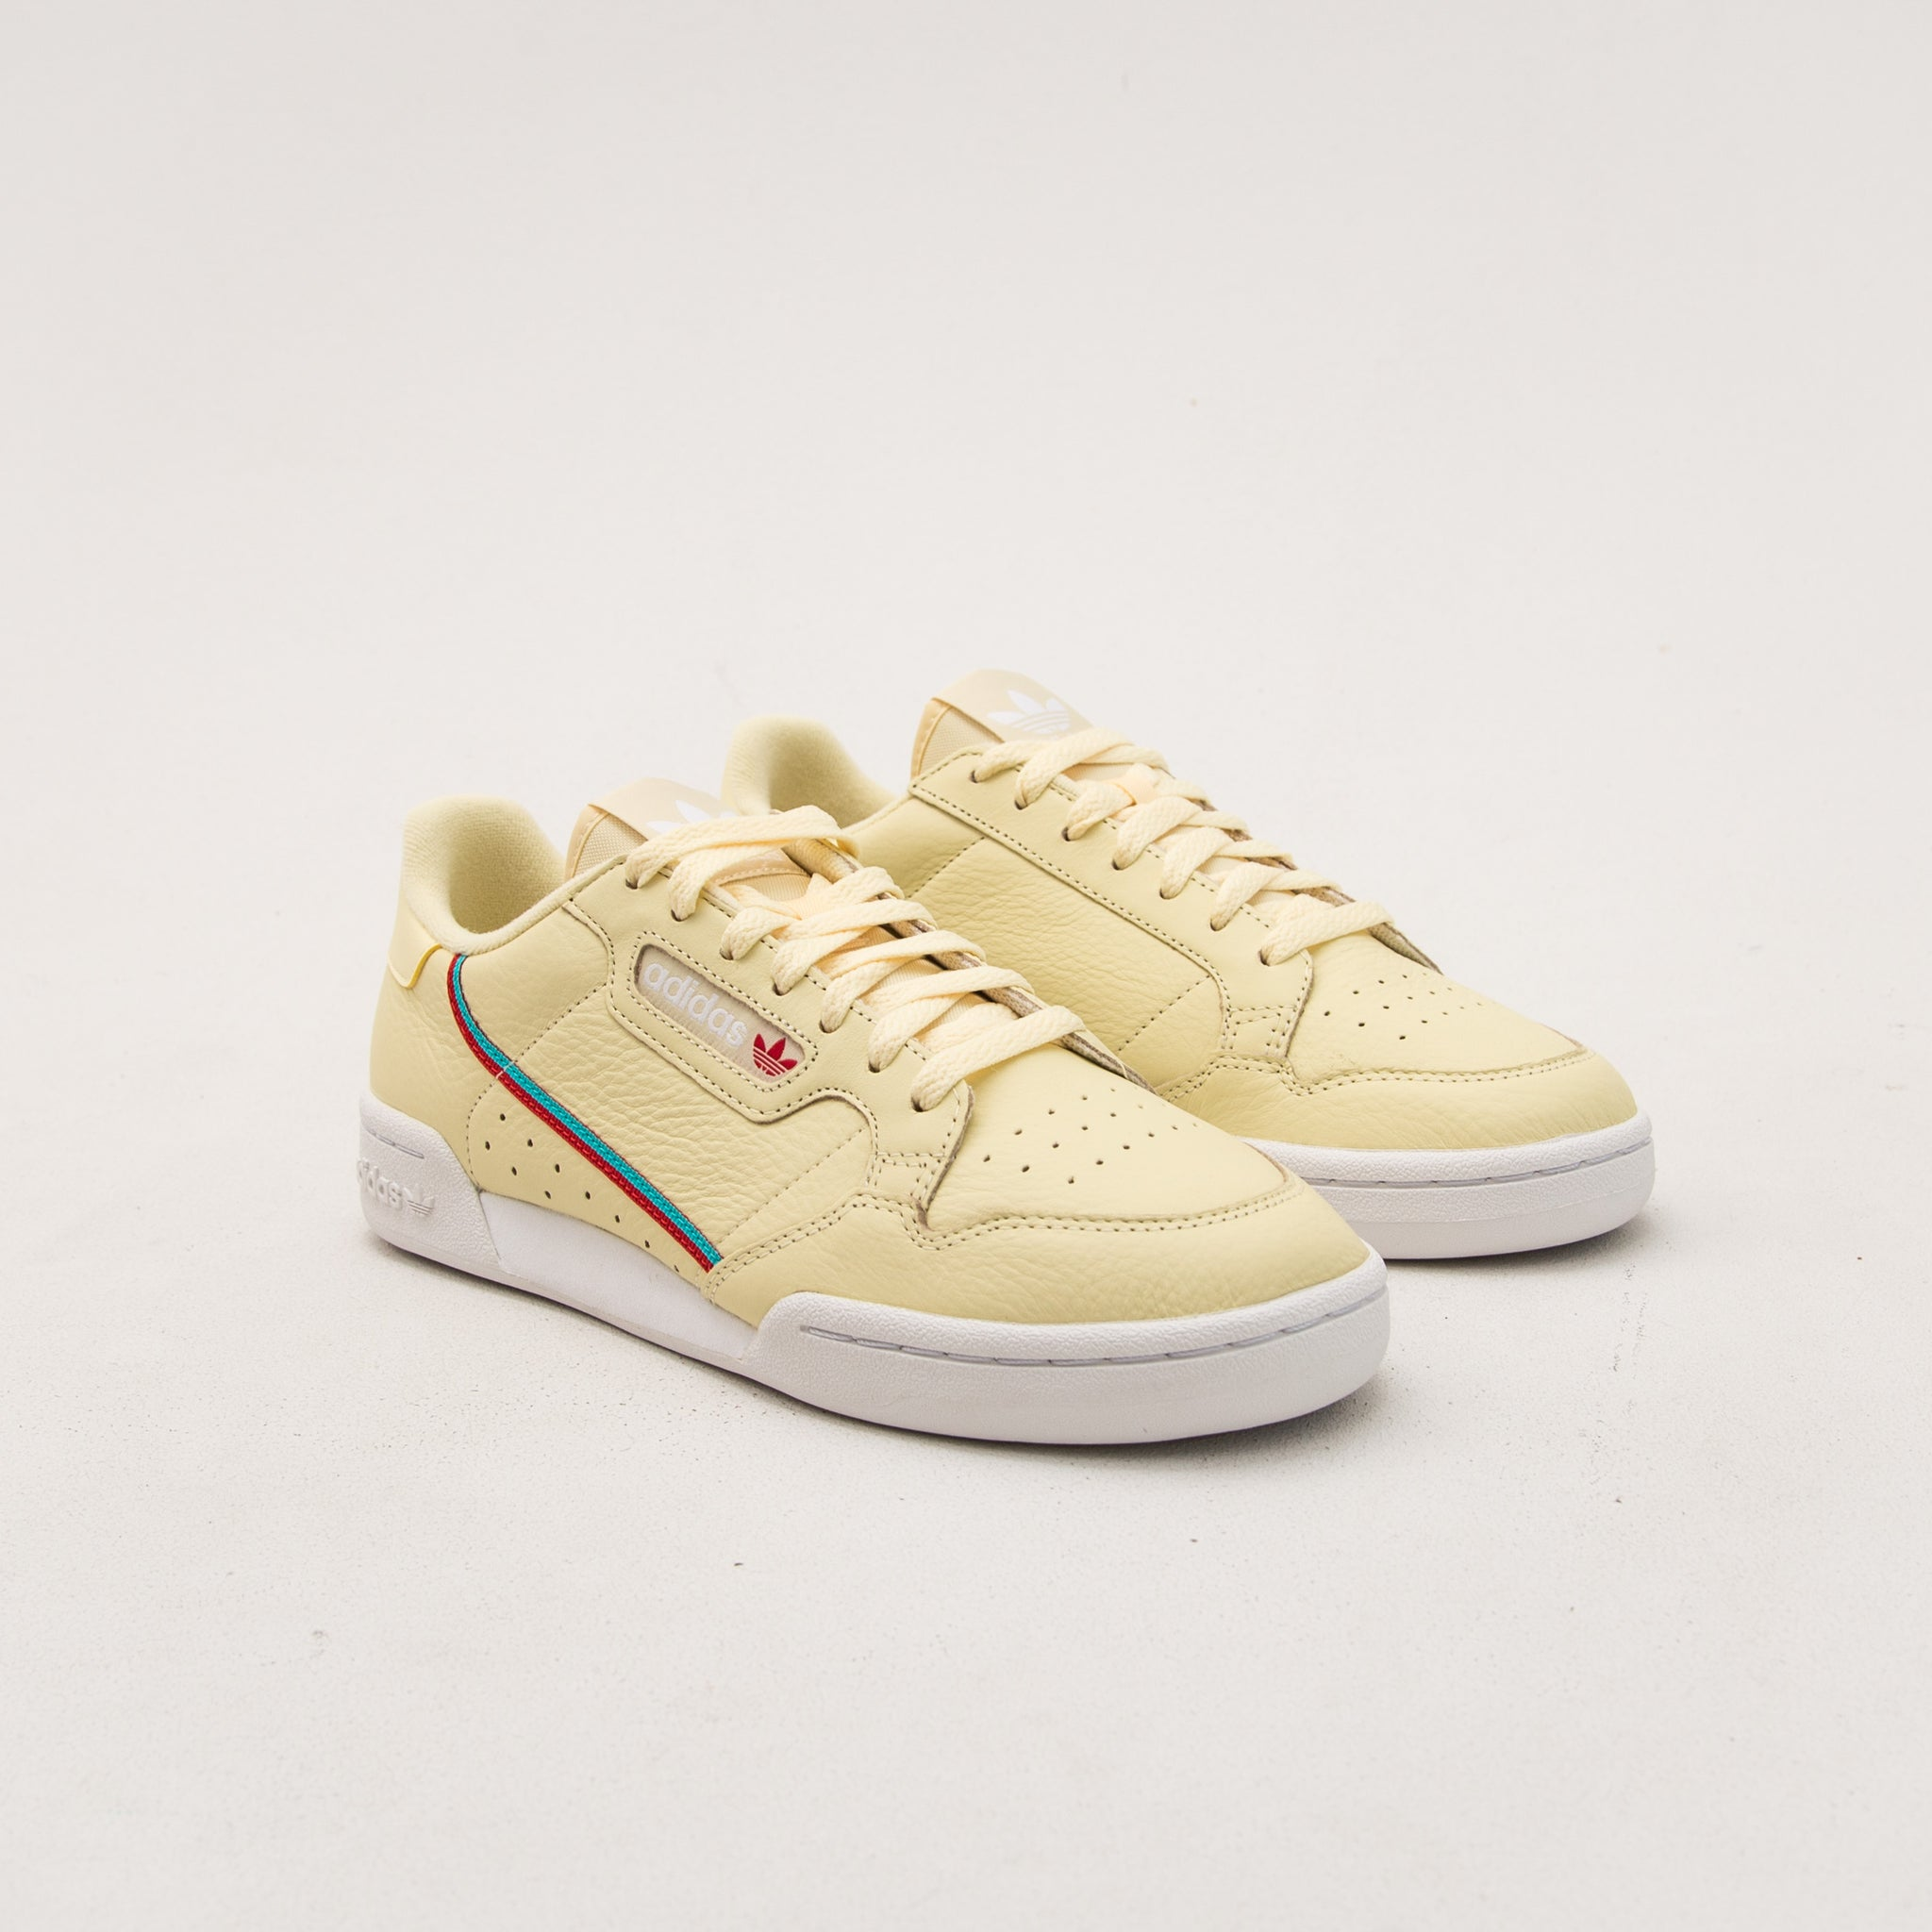 b64af644c4ef67 adidas Continental 80 - Yellow AQ1054 - Buy Sneakers Online